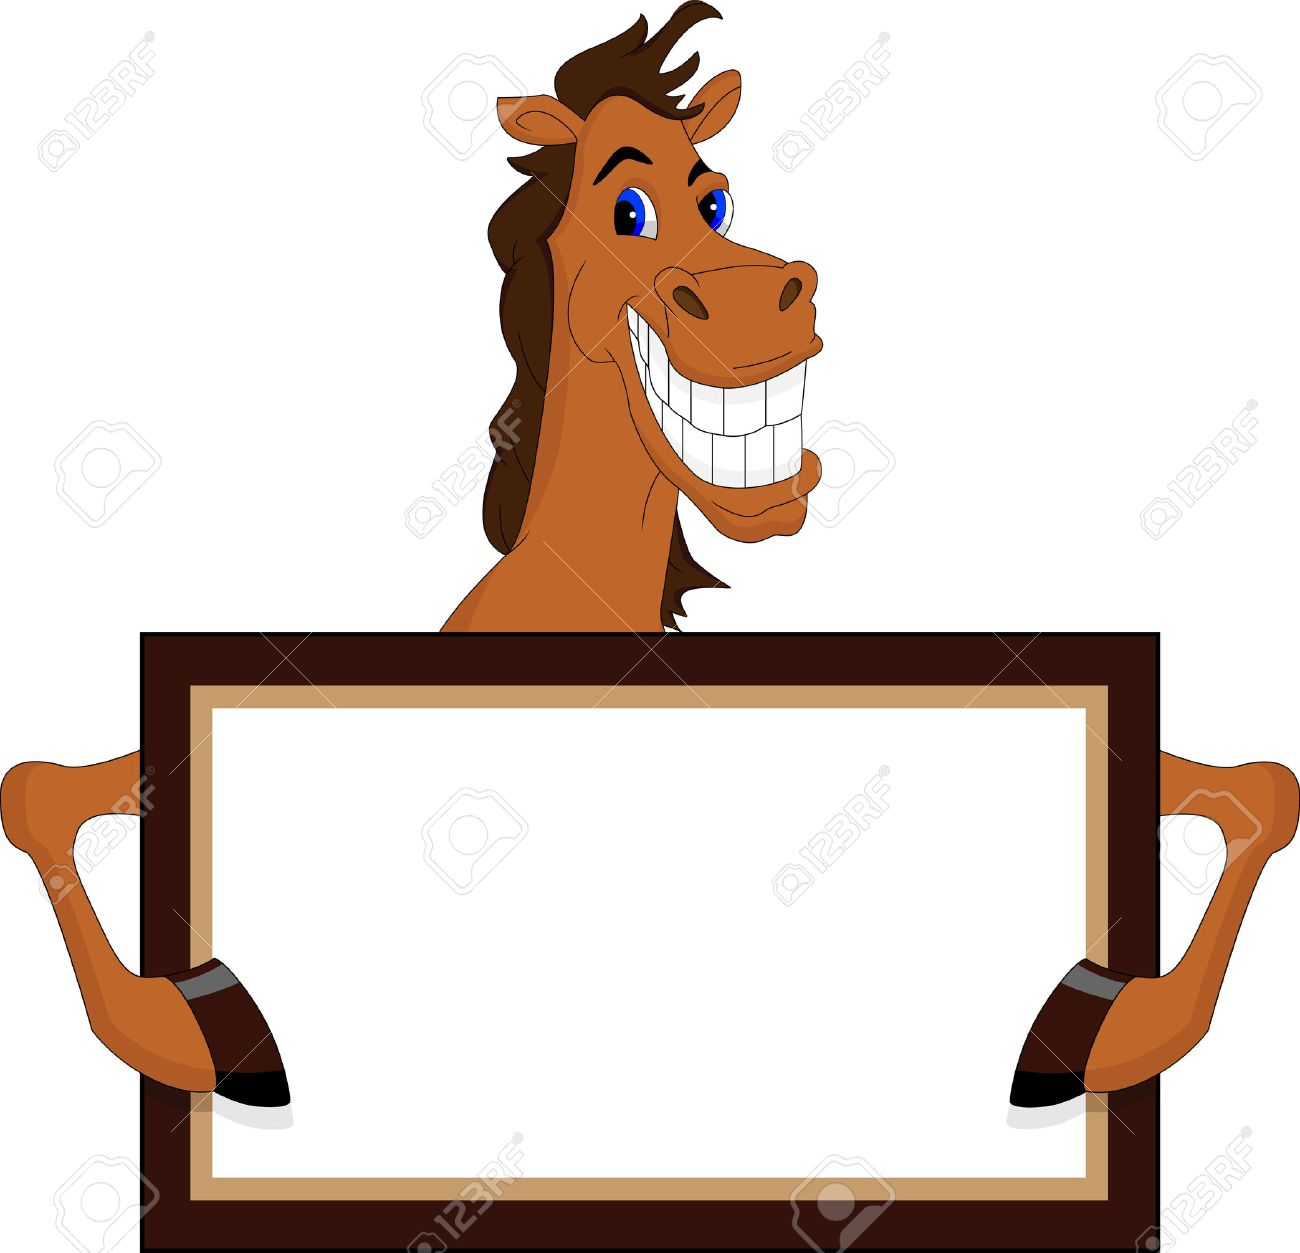 Funny Horse Cartoon With Blank Sign Royalty Free Cliparts Vectors And Stock Illustration Image 23513300